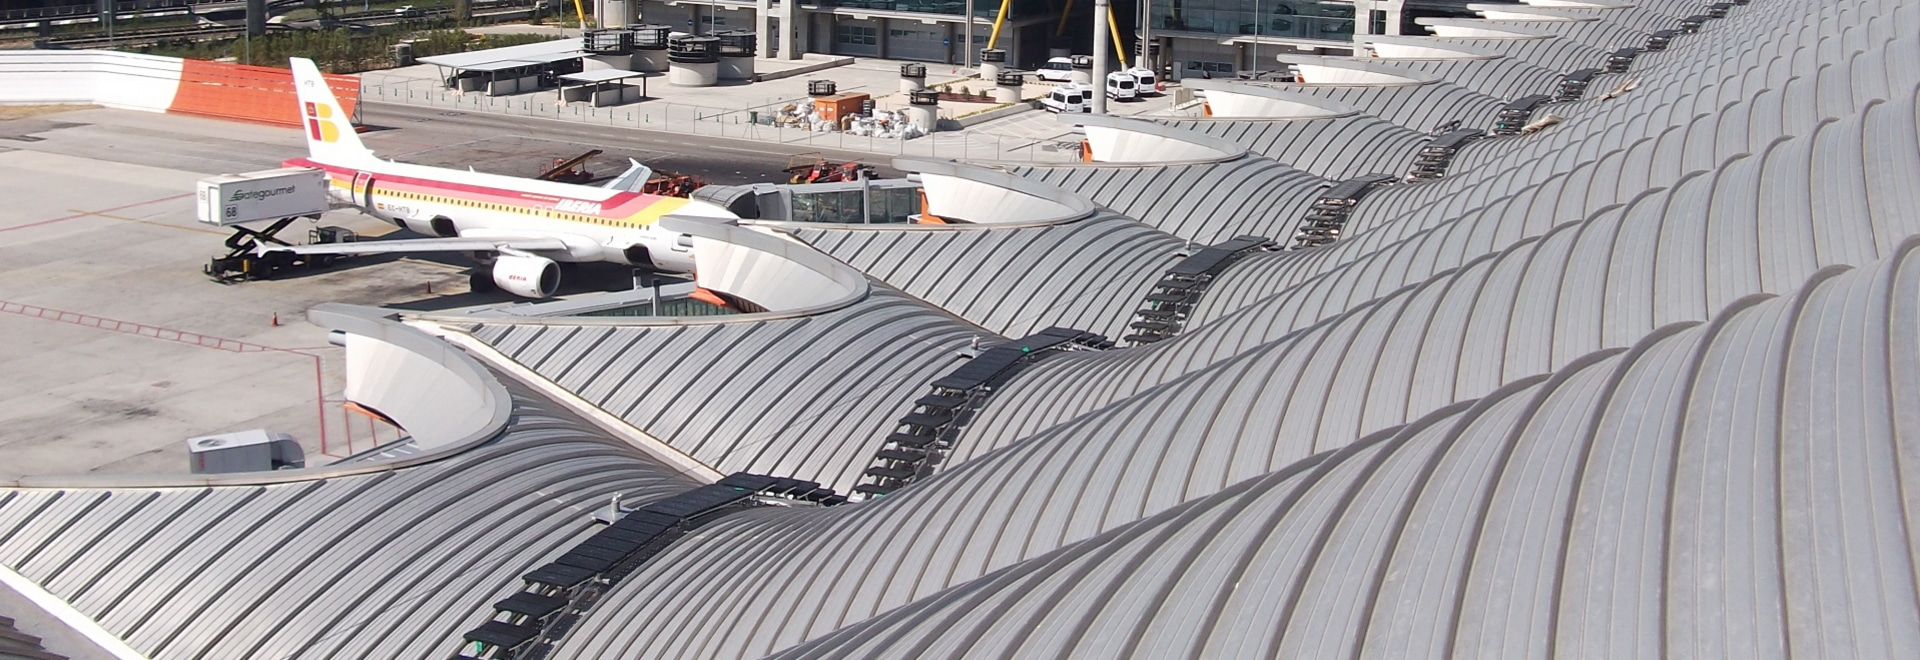 Kee Walk roof top walkway & Roof Safety is Kee at Spanish Airport - Cradley Heath UK - KEE SAFETY memphite.com